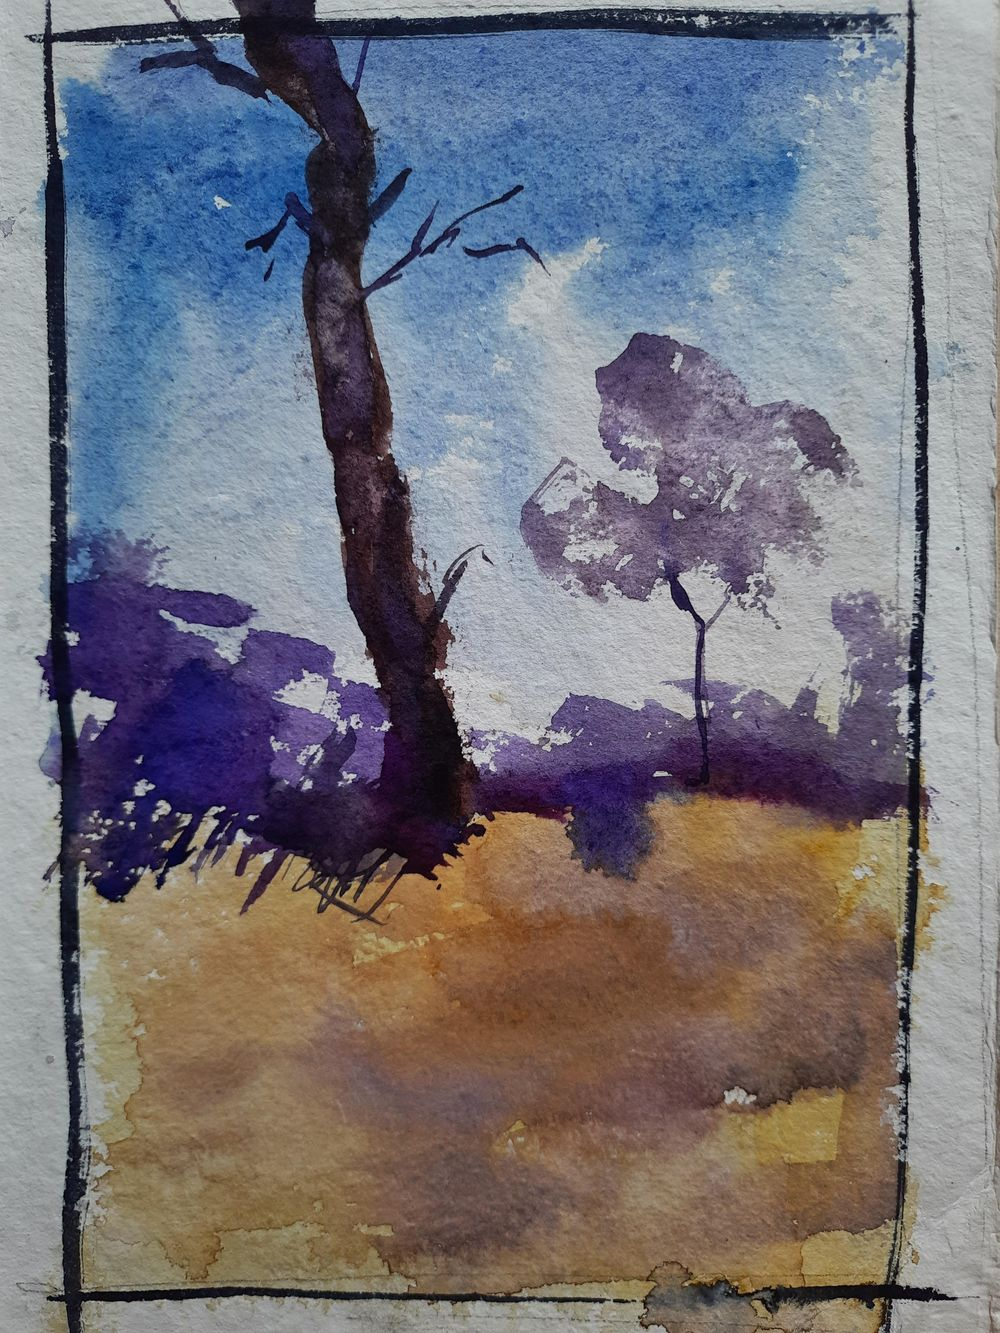 Watercolor workout - image 20 - student project